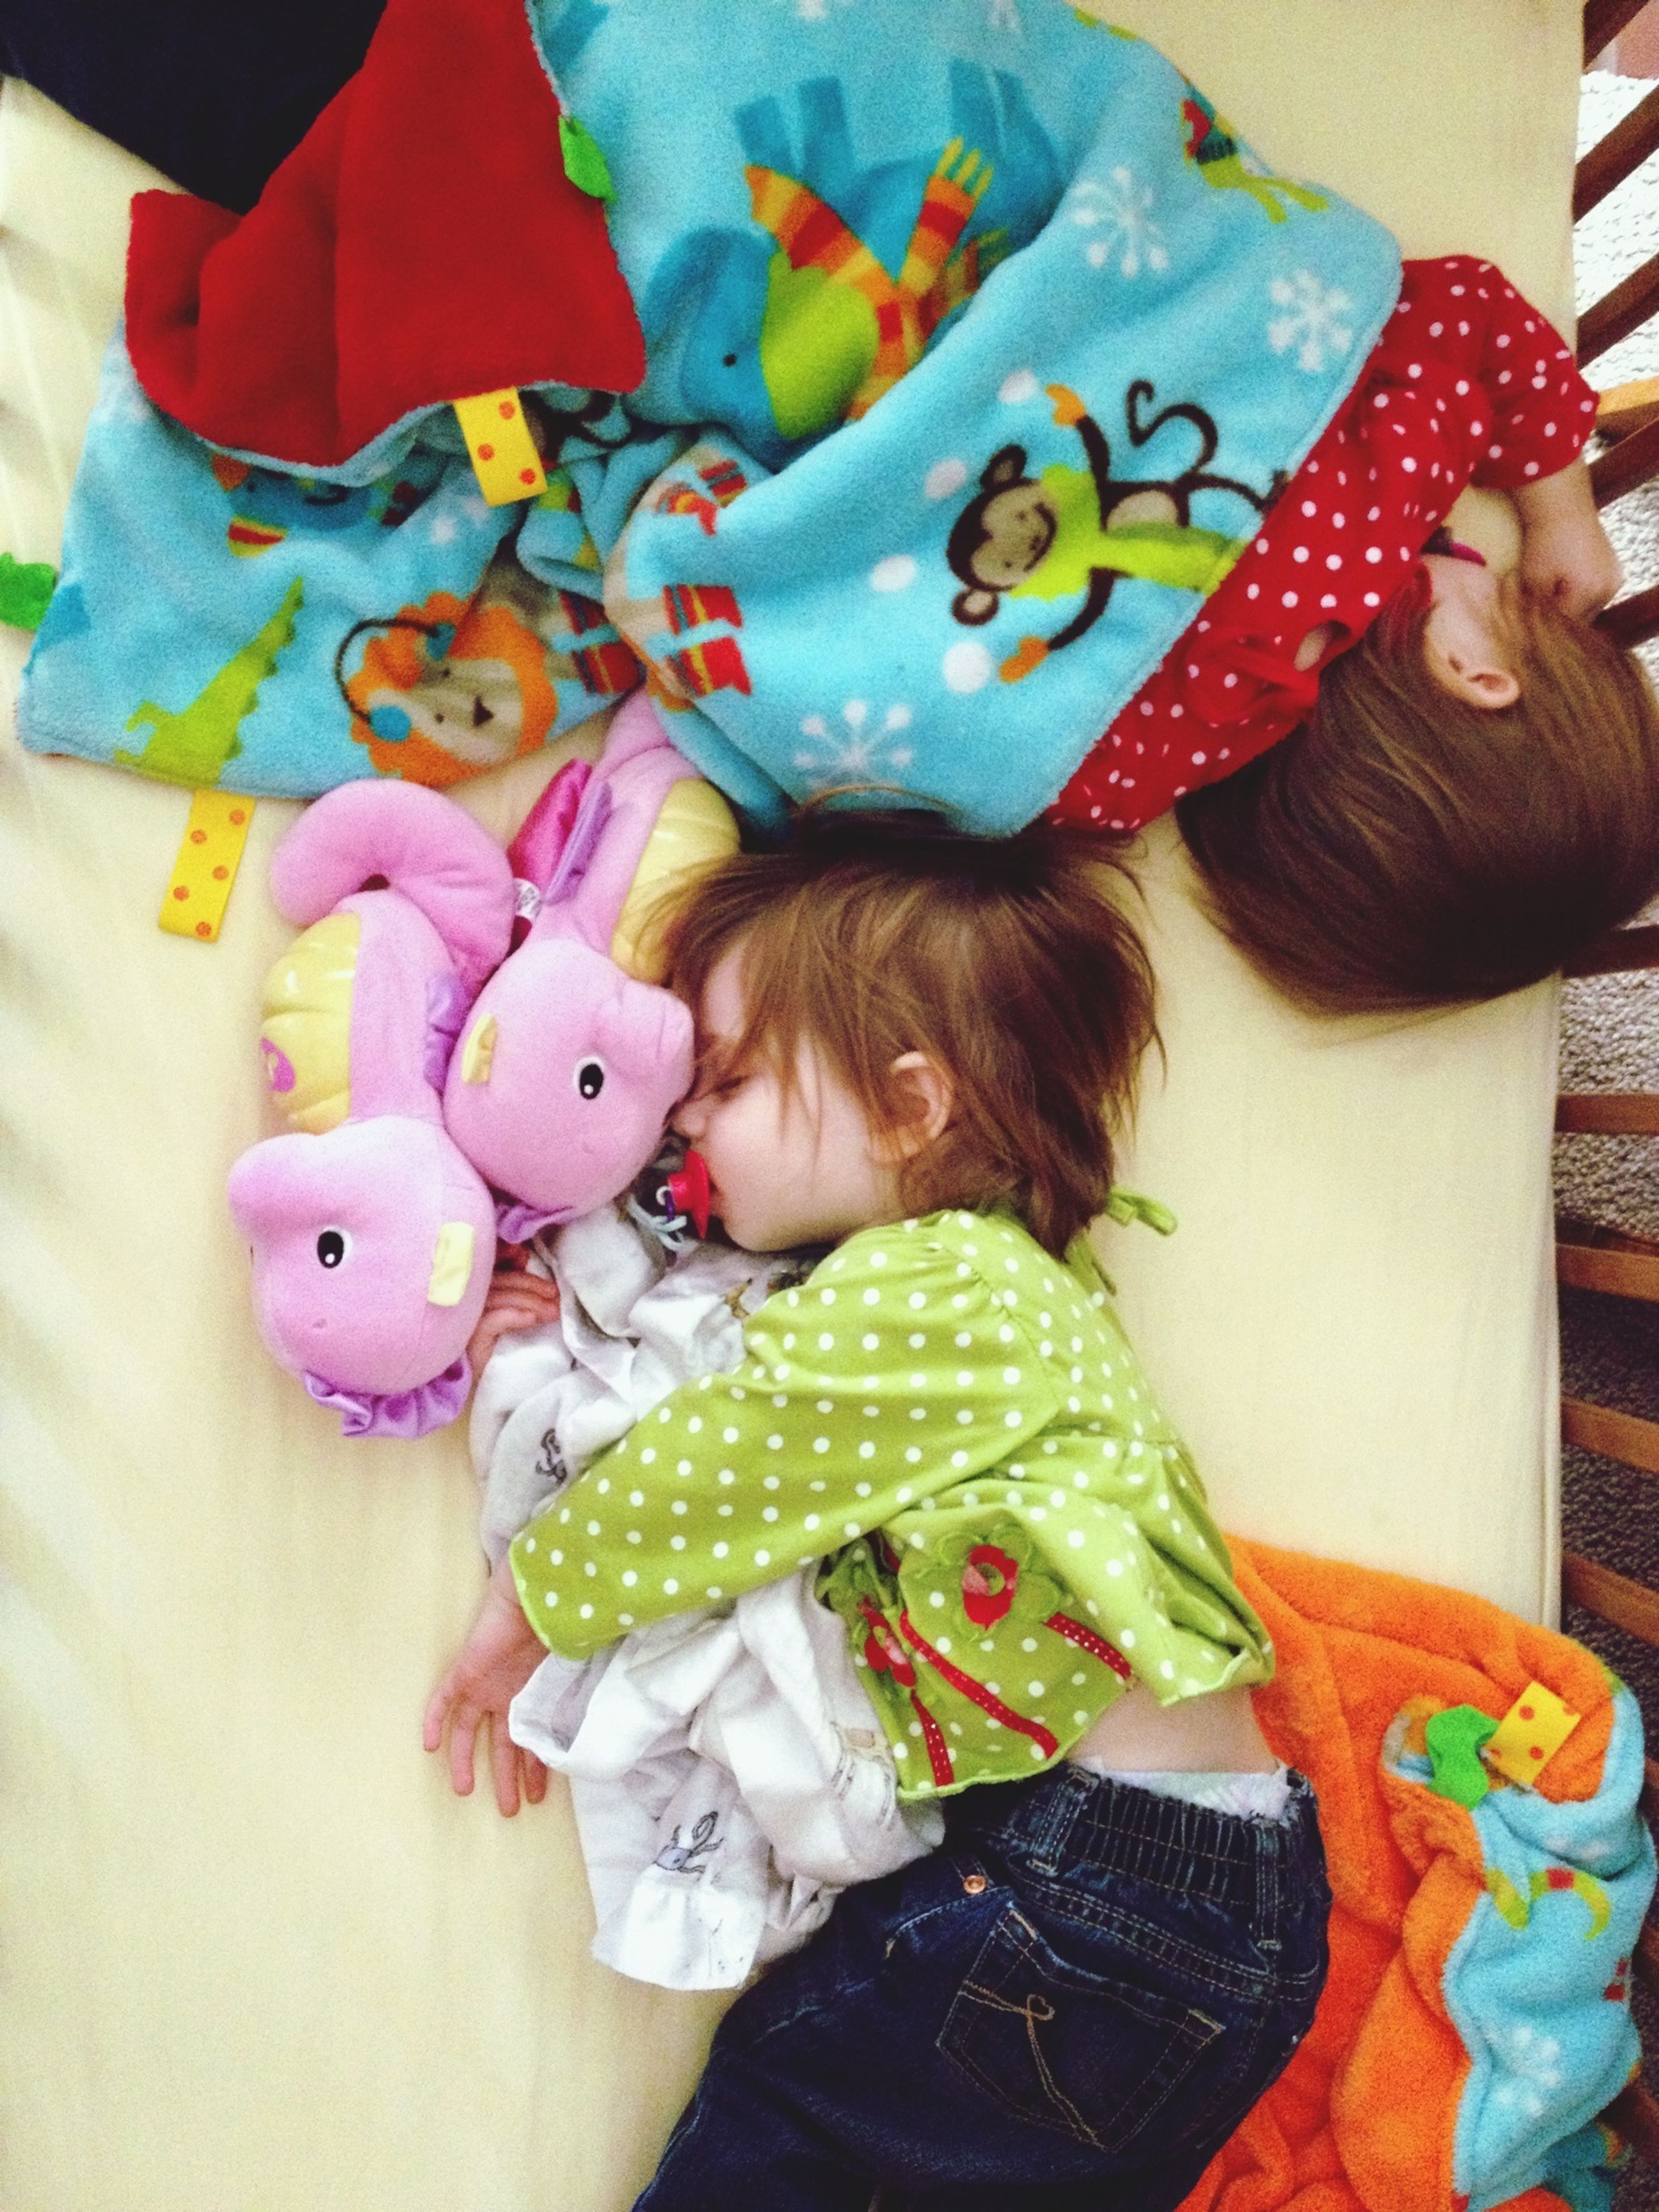 indoors, childhood, toy, multi colored, high angle view, holding, elementary age, lifestyles, leisure activity, cute, variation, innocence, still life, creativity, animal representation, casual clothing, home interior, girls